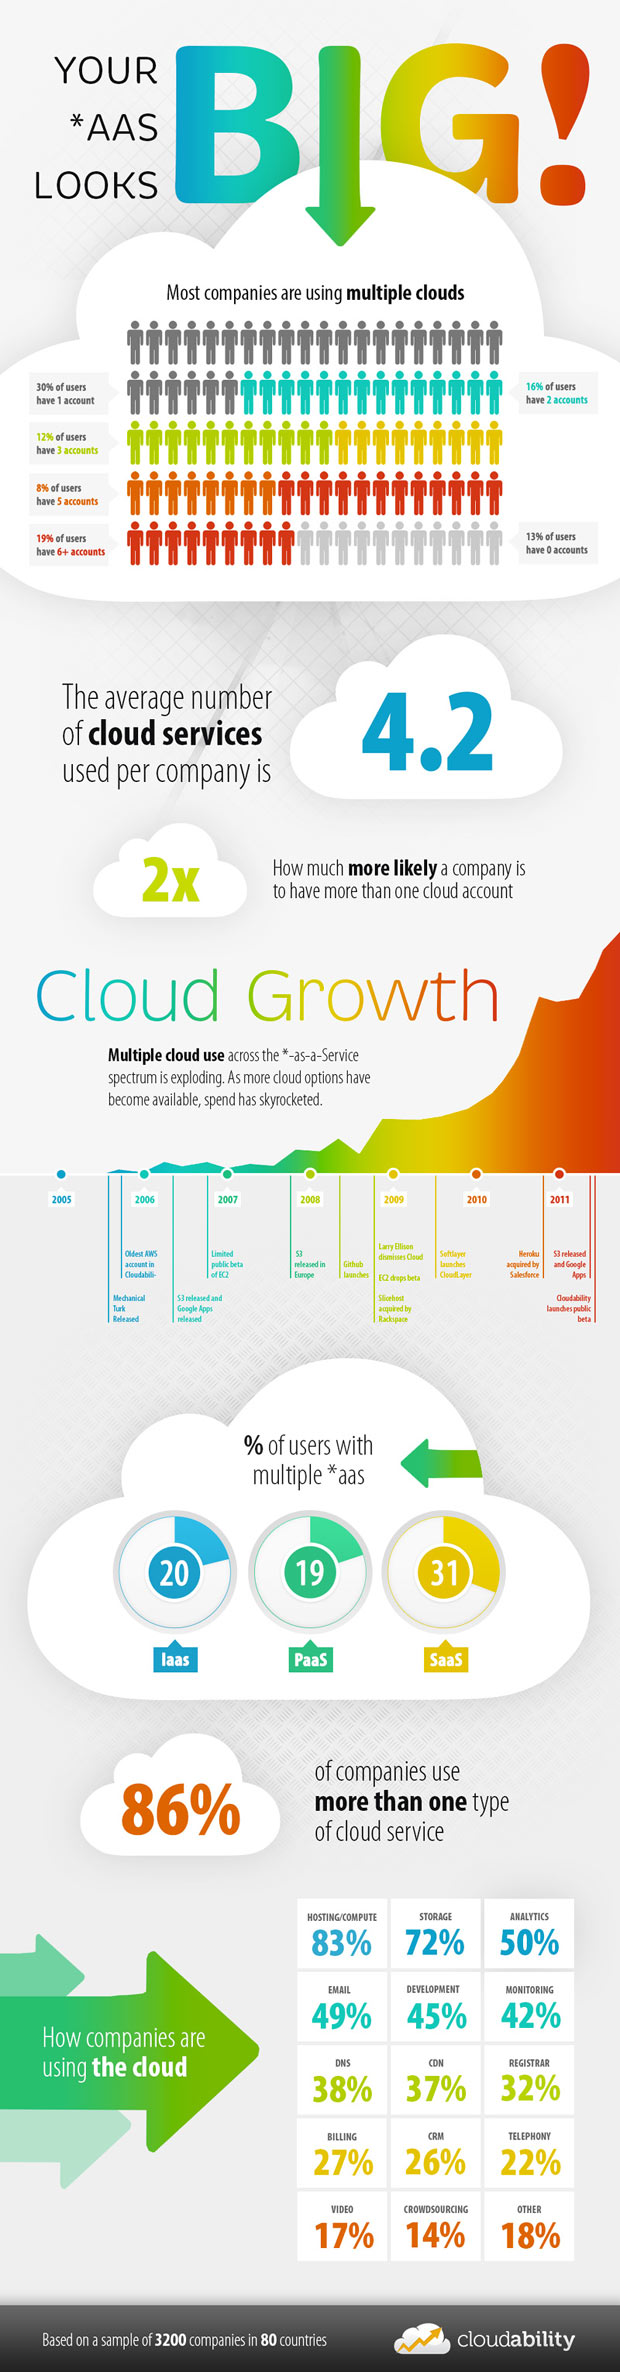 xaas trends infographic